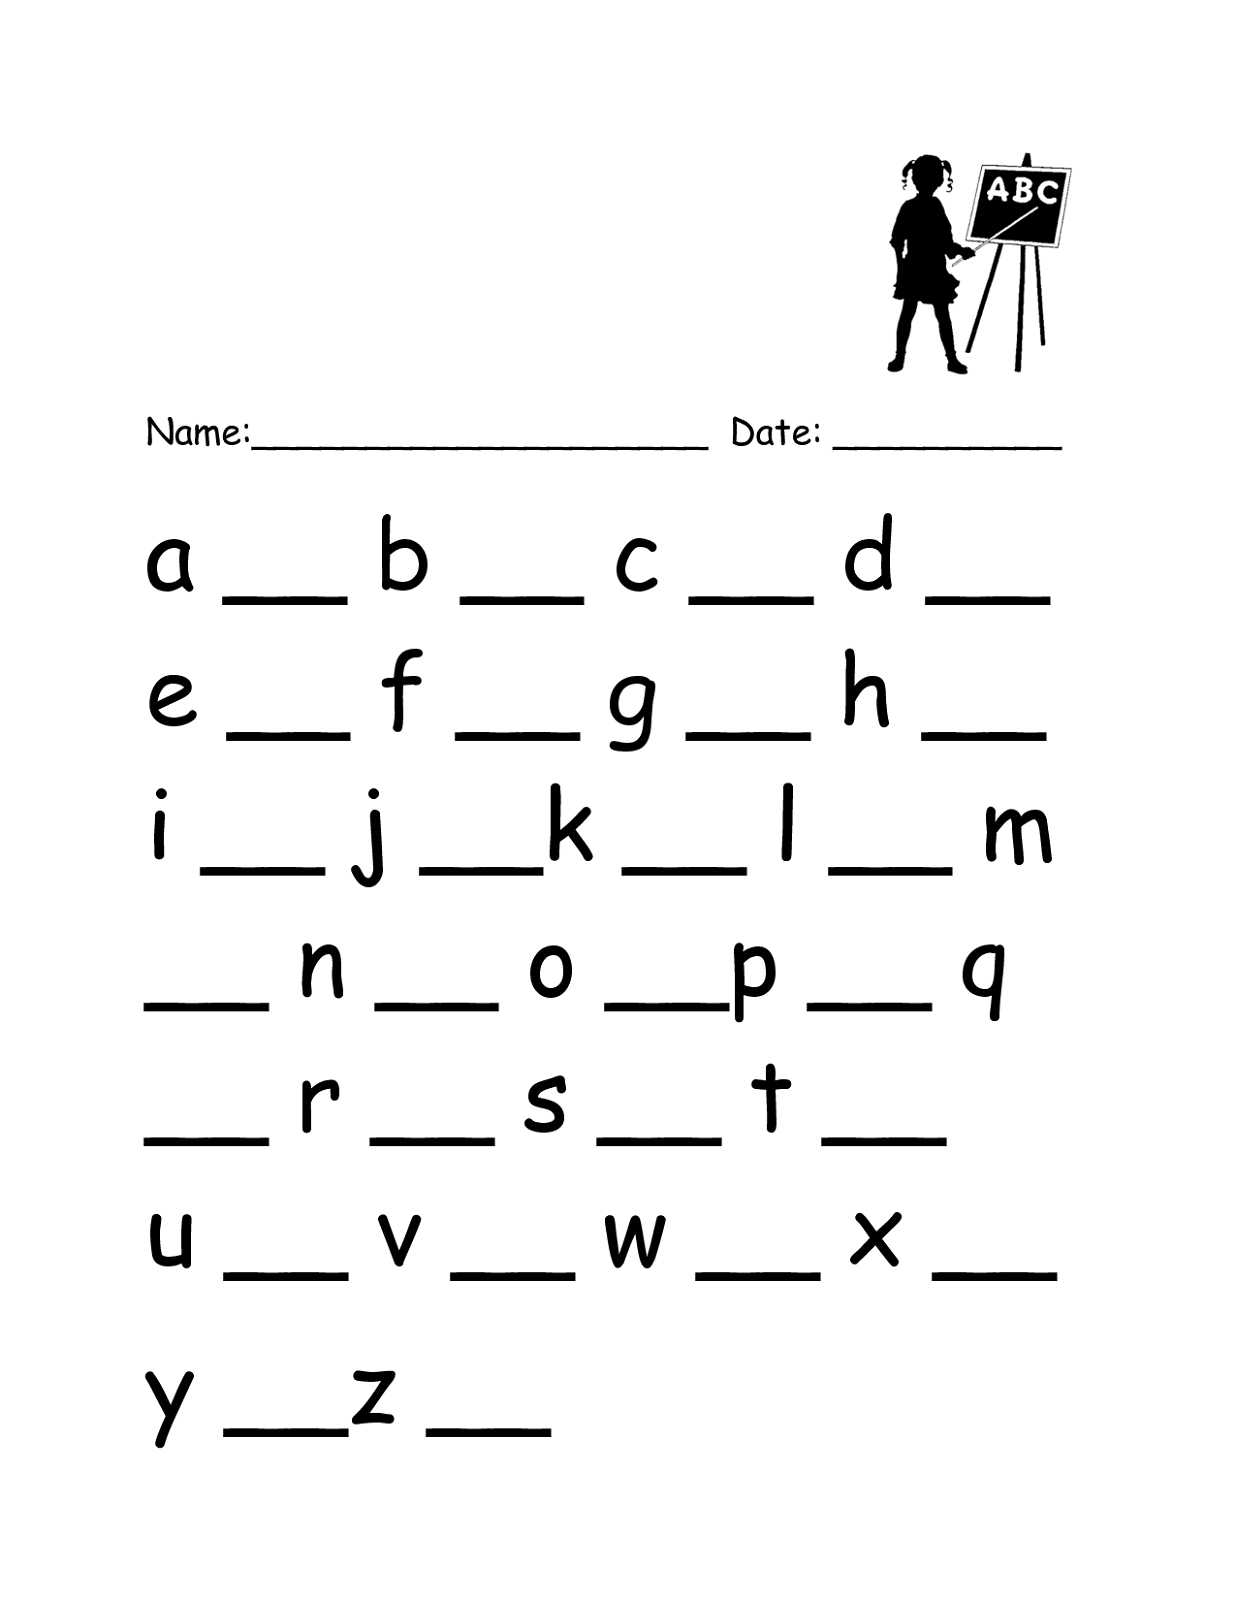 Alphabet Worksheets for Grade 1 Also Captivating Big and Small Alphabet Worksheet with Additional Writing